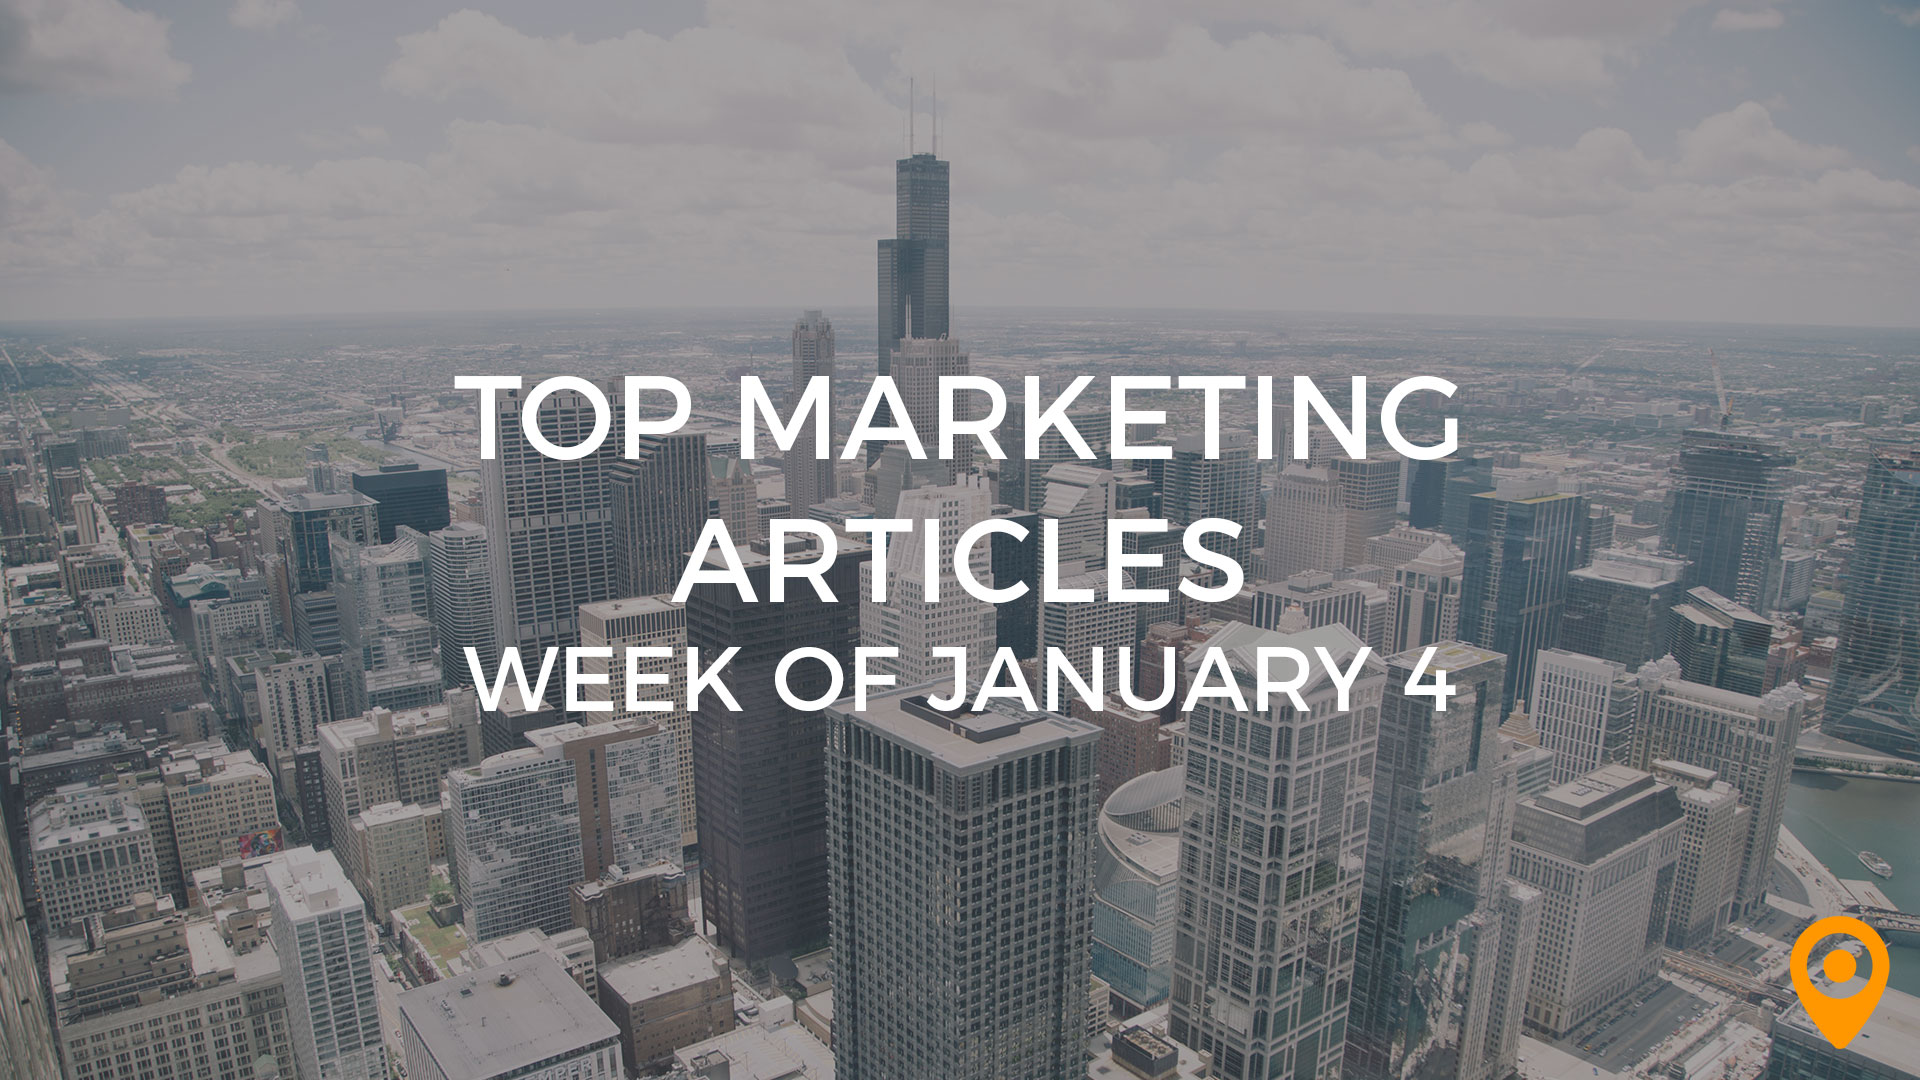 Top Marketing Articles Week of Jan 4